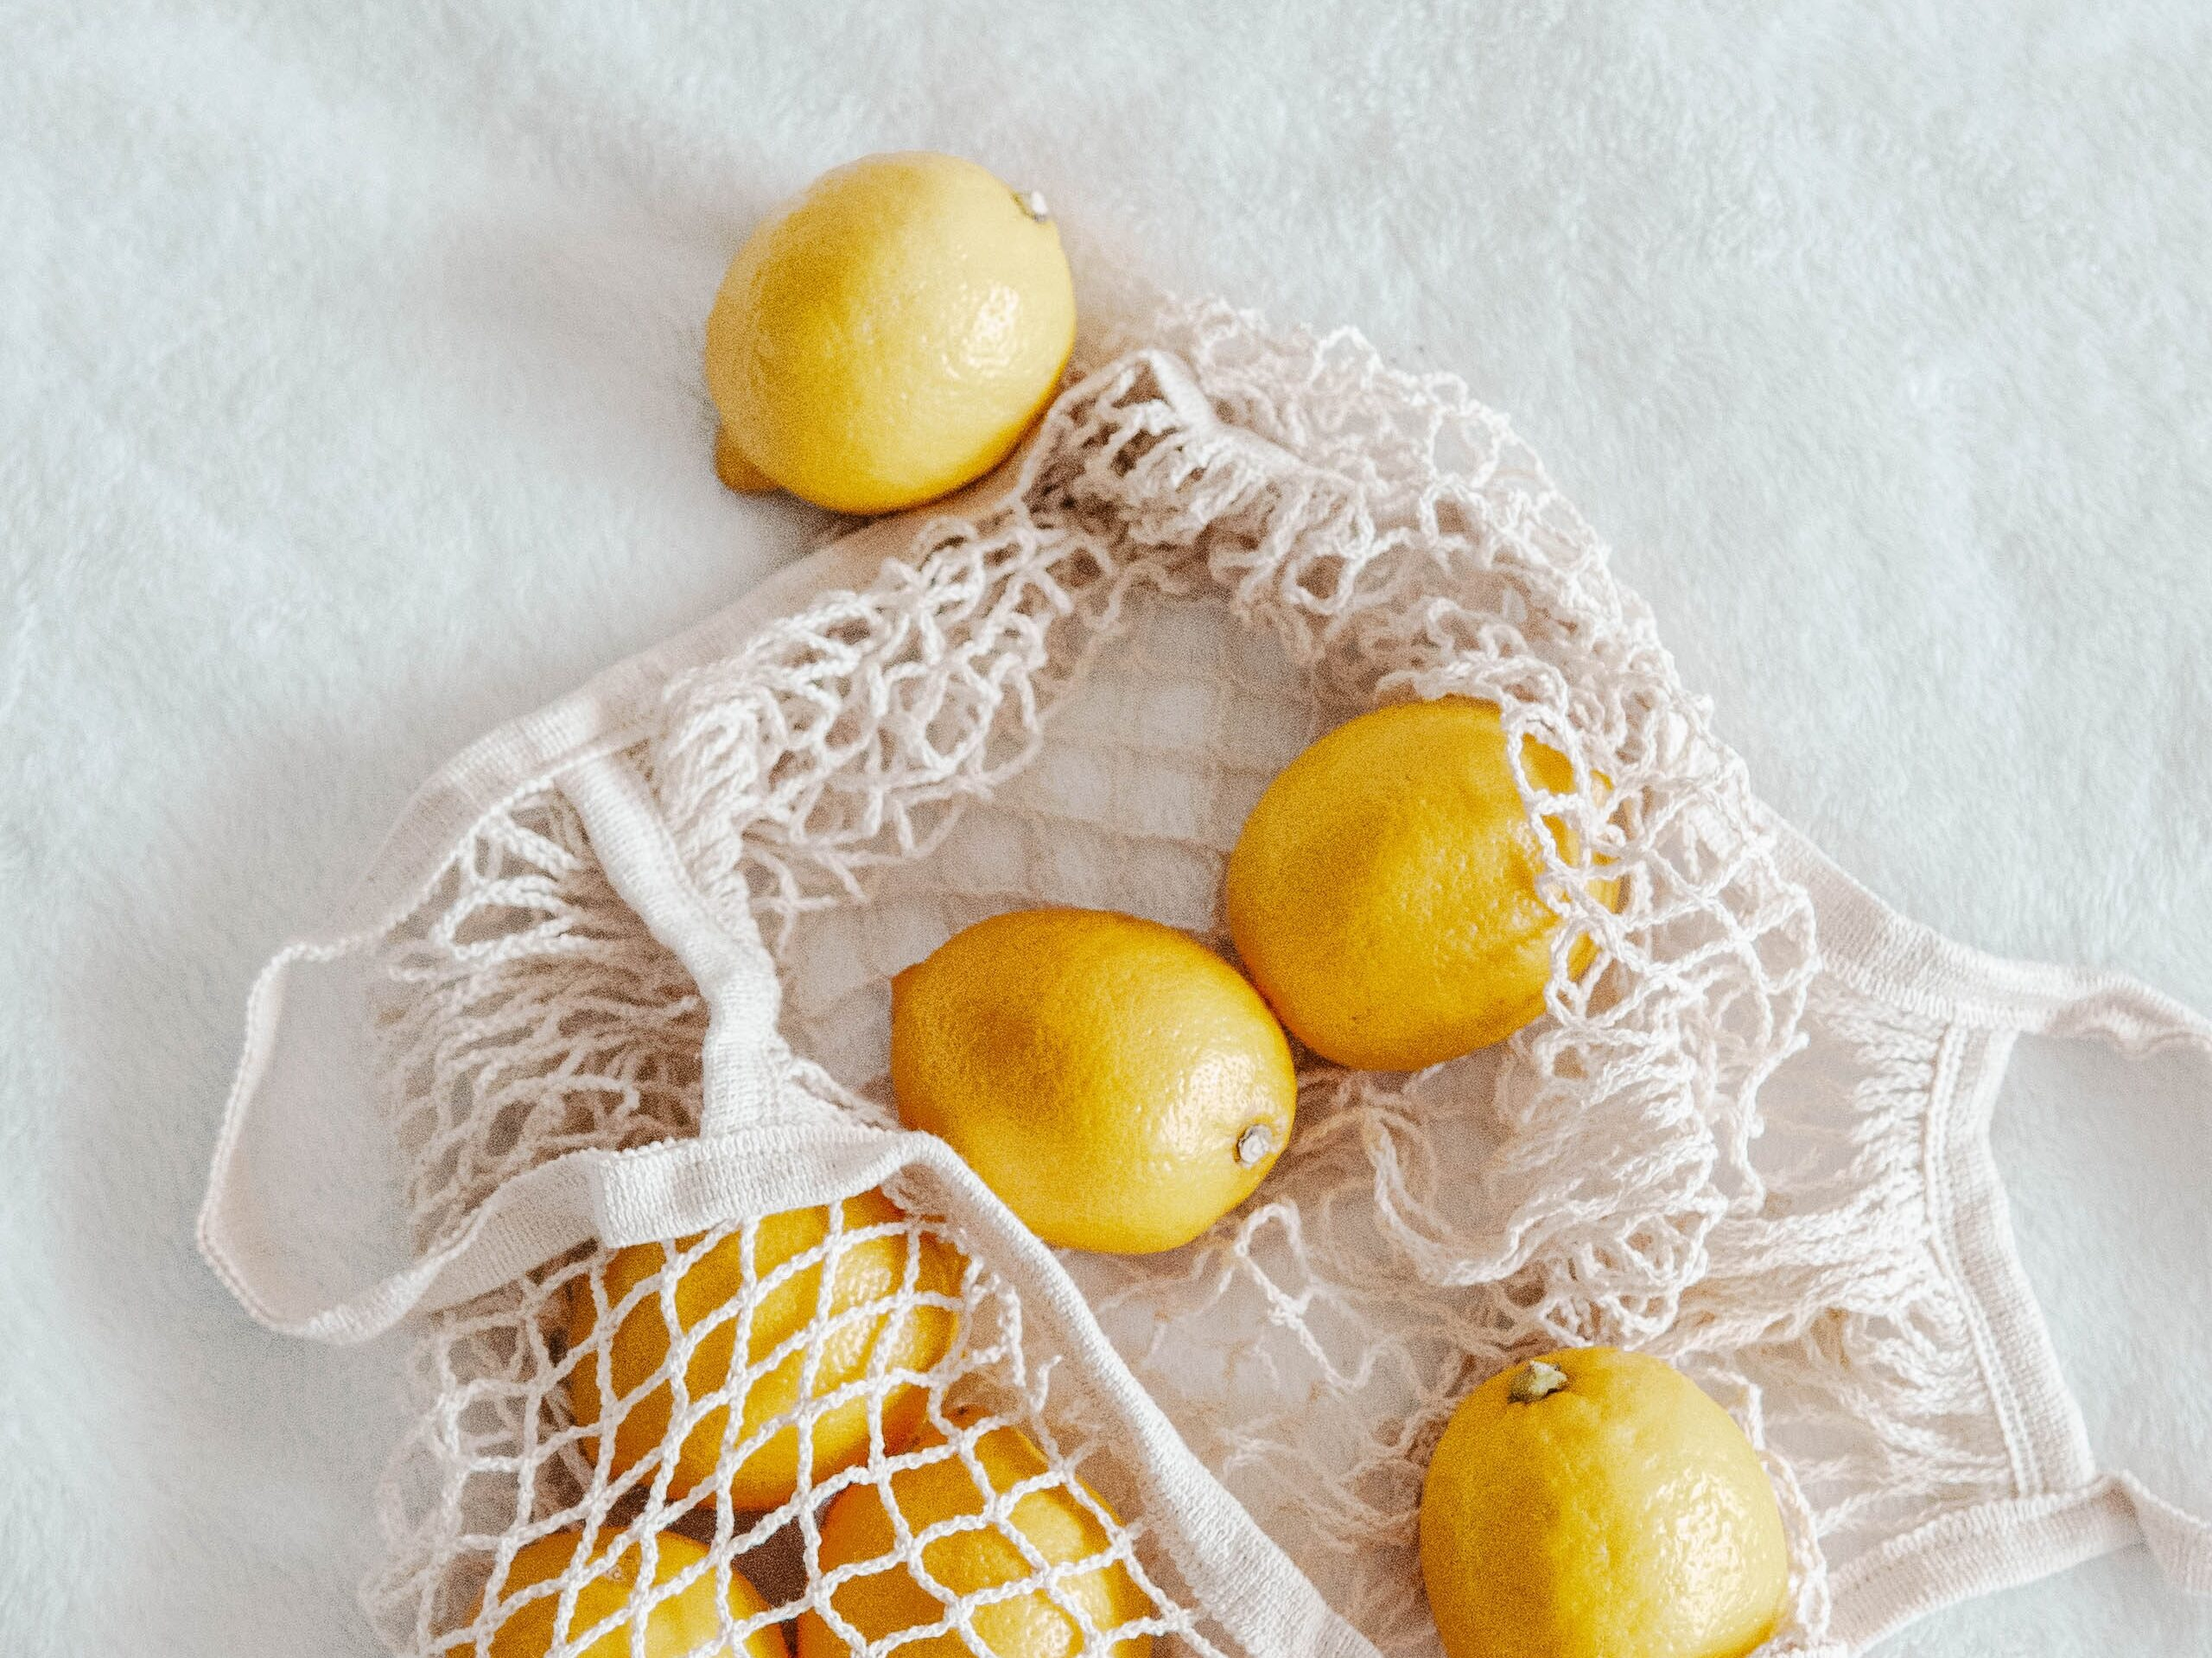 lemons spread in and out of a reusable grocery bag -- we should invest in reusable bags for environmentally friendly living.